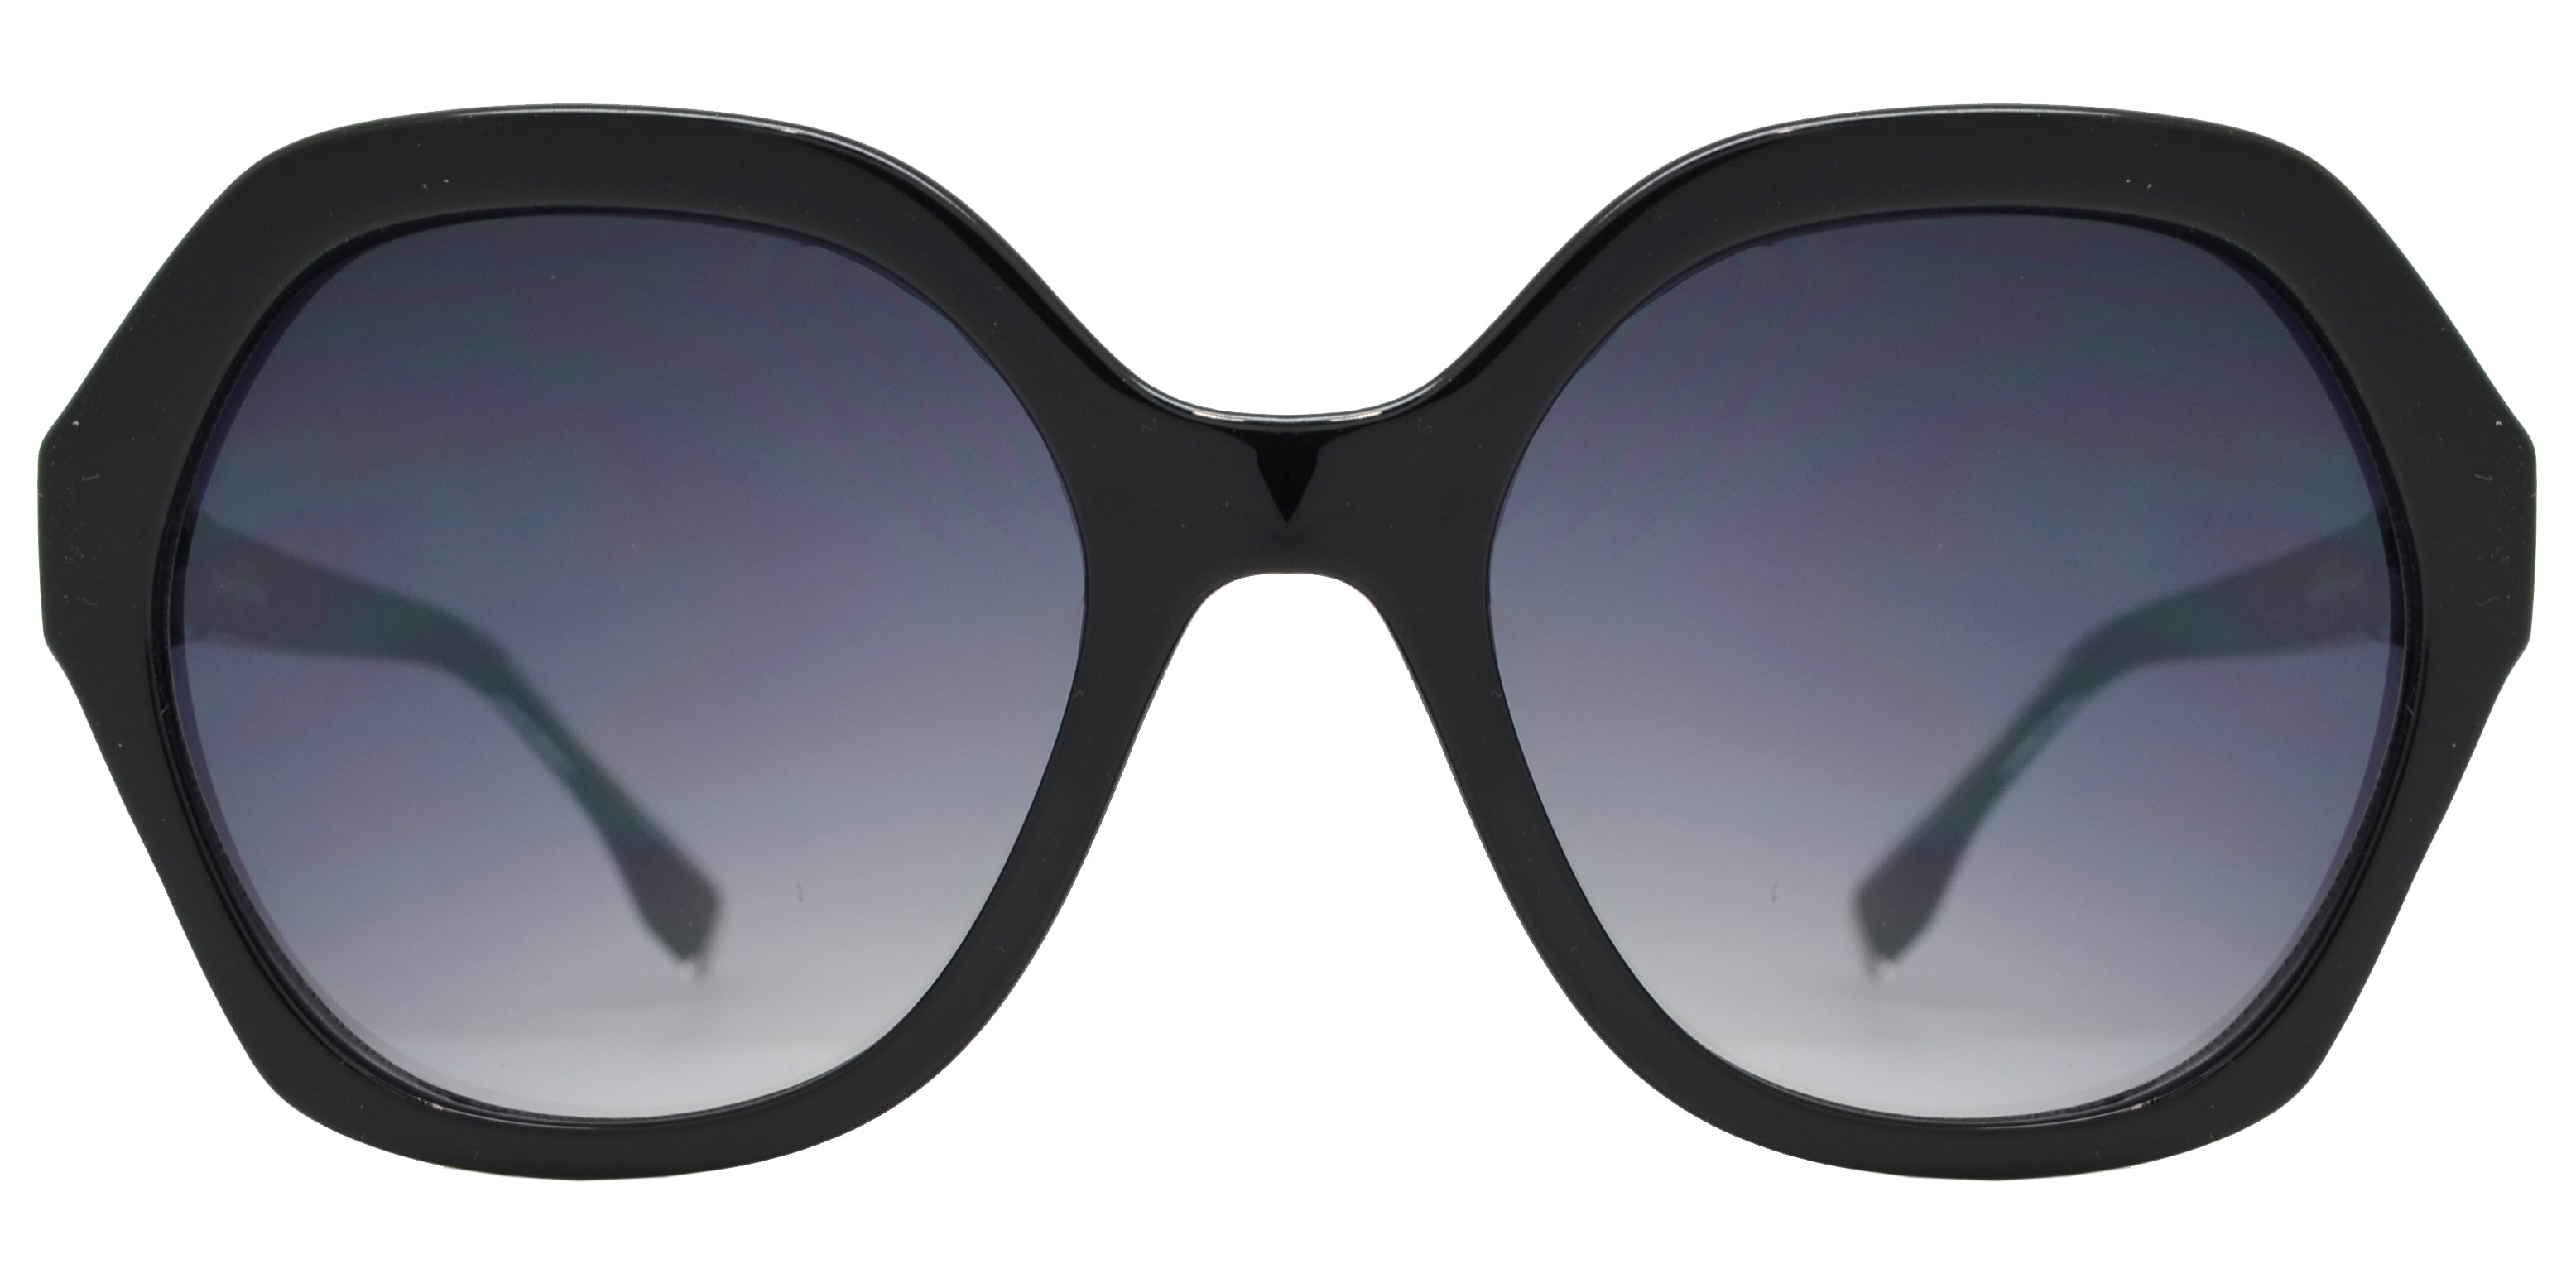 FC 6436 - Women's Plastic Hexagon Sunglasses with Metal Studs